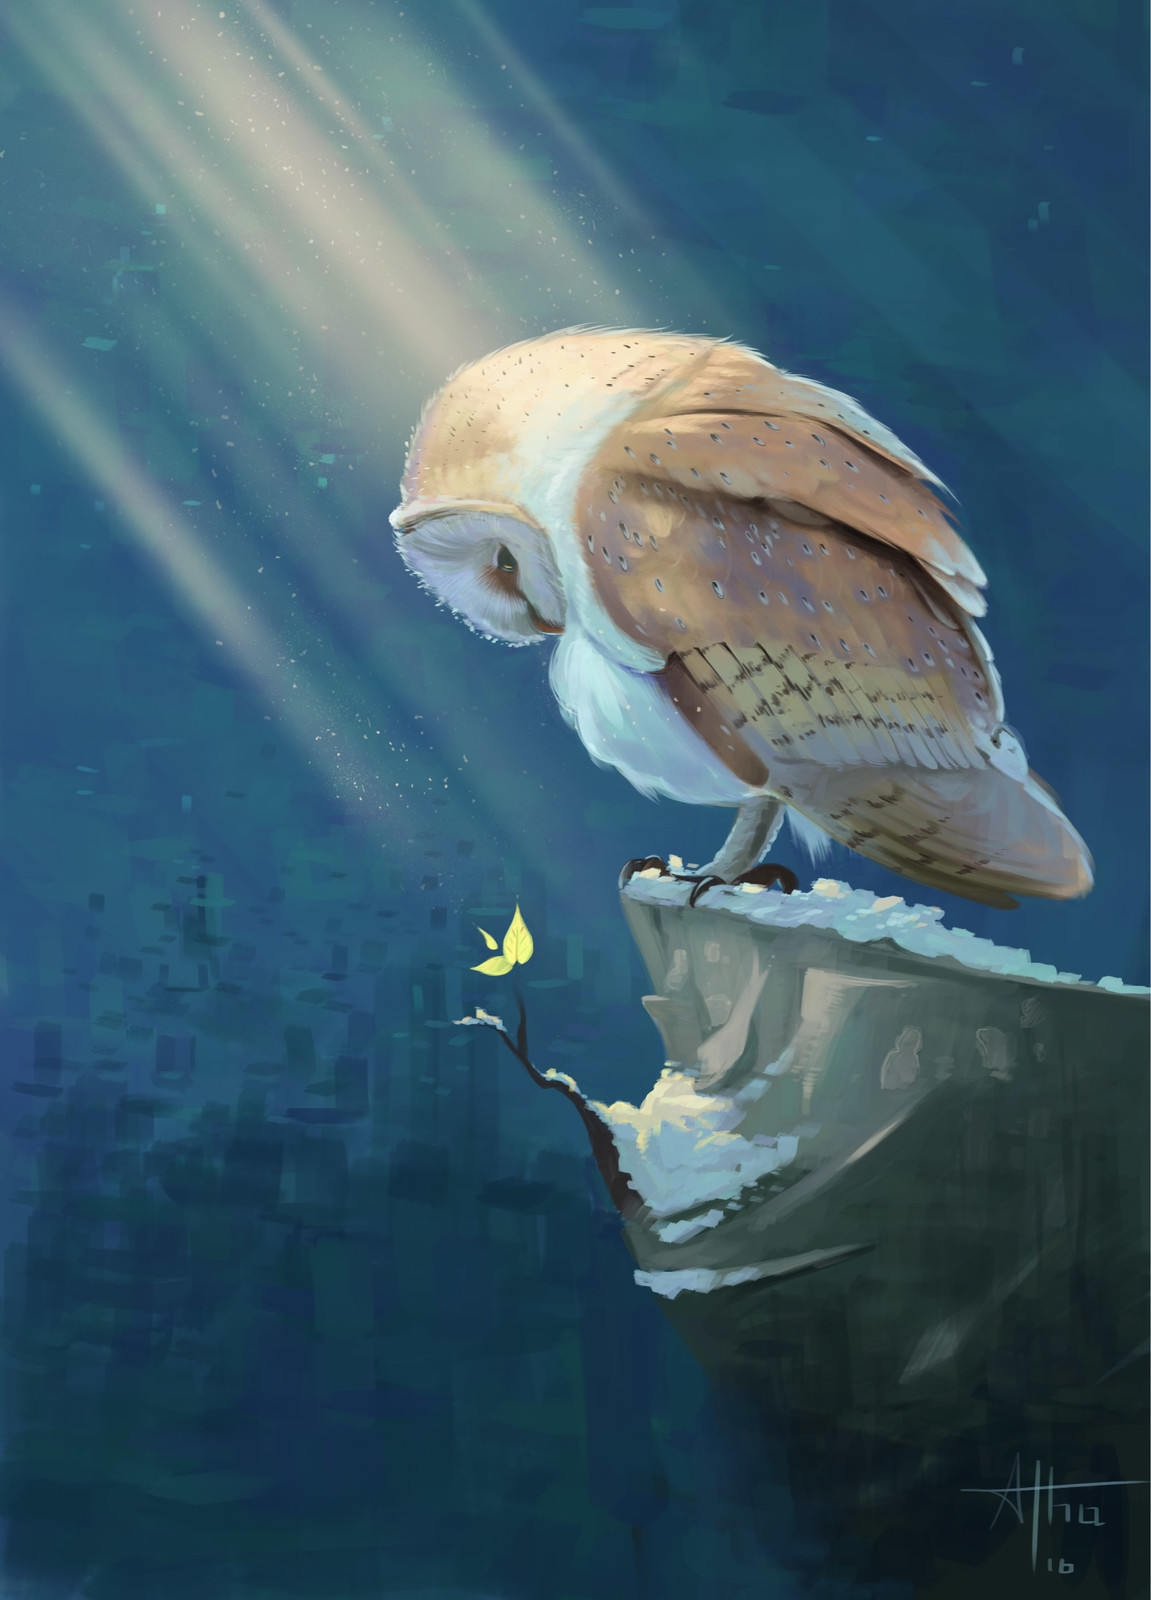 owl on a roc, personal illustration